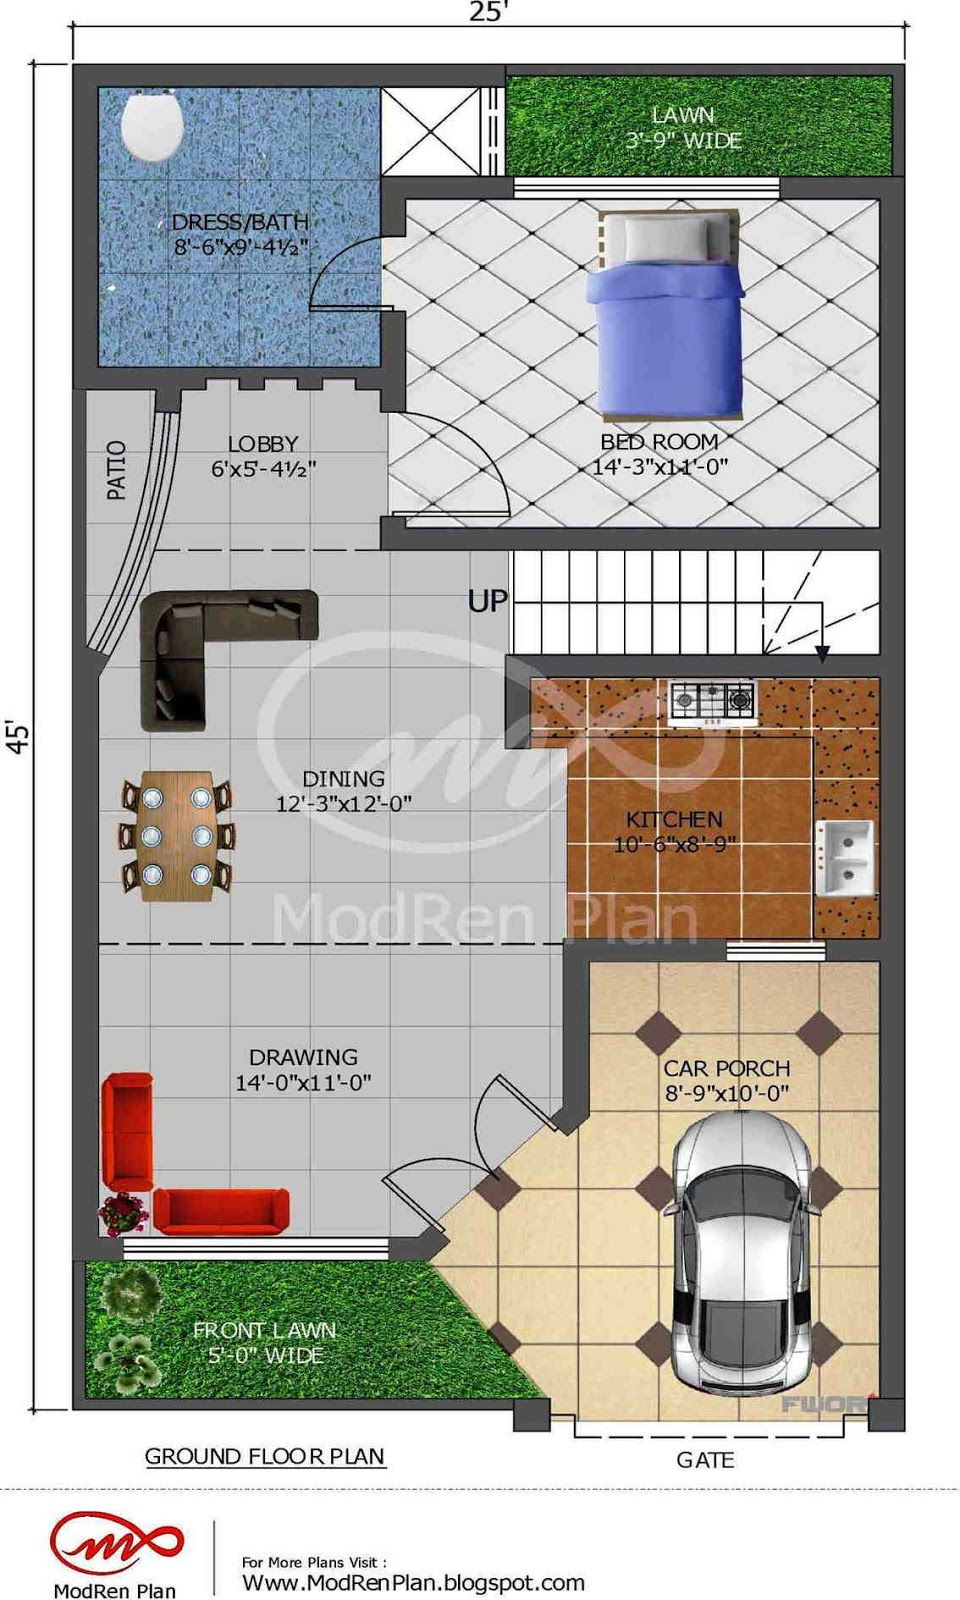 5 marla house plan |1200 sq ft| 25x45 feet|www.modrenplan ...